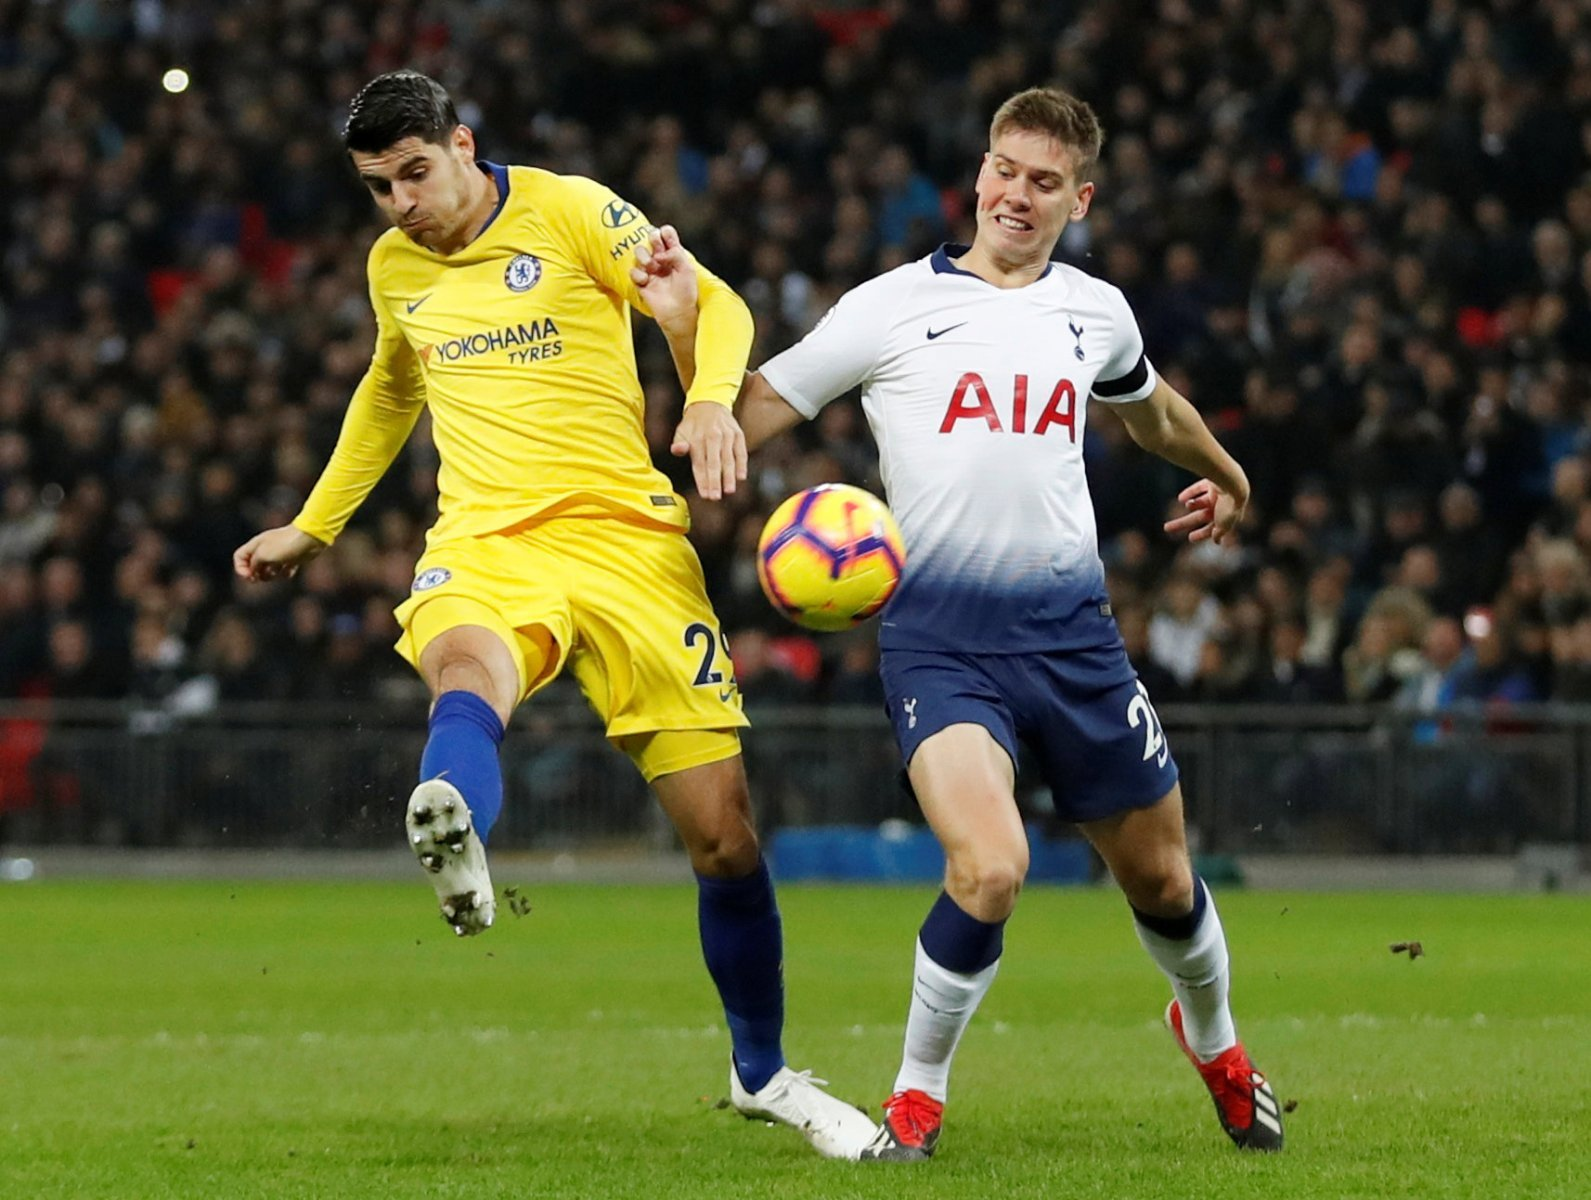 Tottenham team news: Pochettino has Foyth available for Arsenal Cup clash